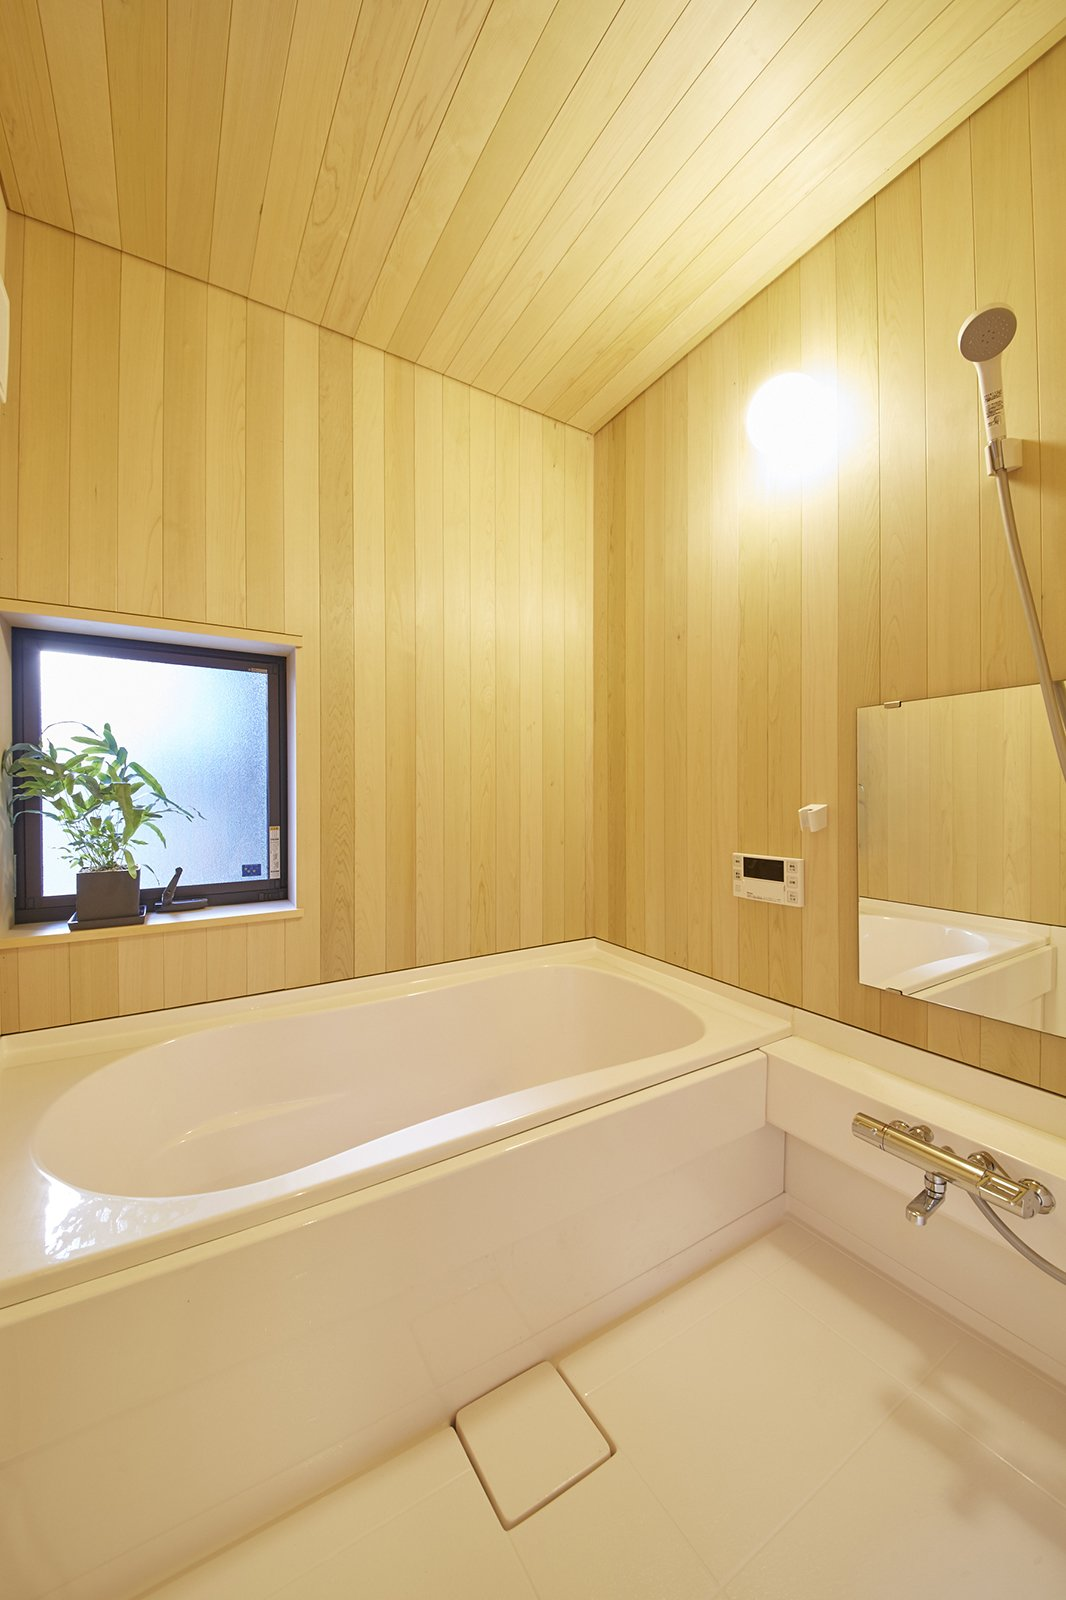 The bathroom's sauna-like interior includes a deep Toto bathtub—characteristic of traditional Japanese baths. The wooden hiba paneling, chosen because it is more water resistant than hinoki, is specific to the Northern Aomori region of Japan. Tagged: Bath Room, Drop In Tub, Open Shower, and Wall Lighting.  Yanagisaki House by Caroline Wallis